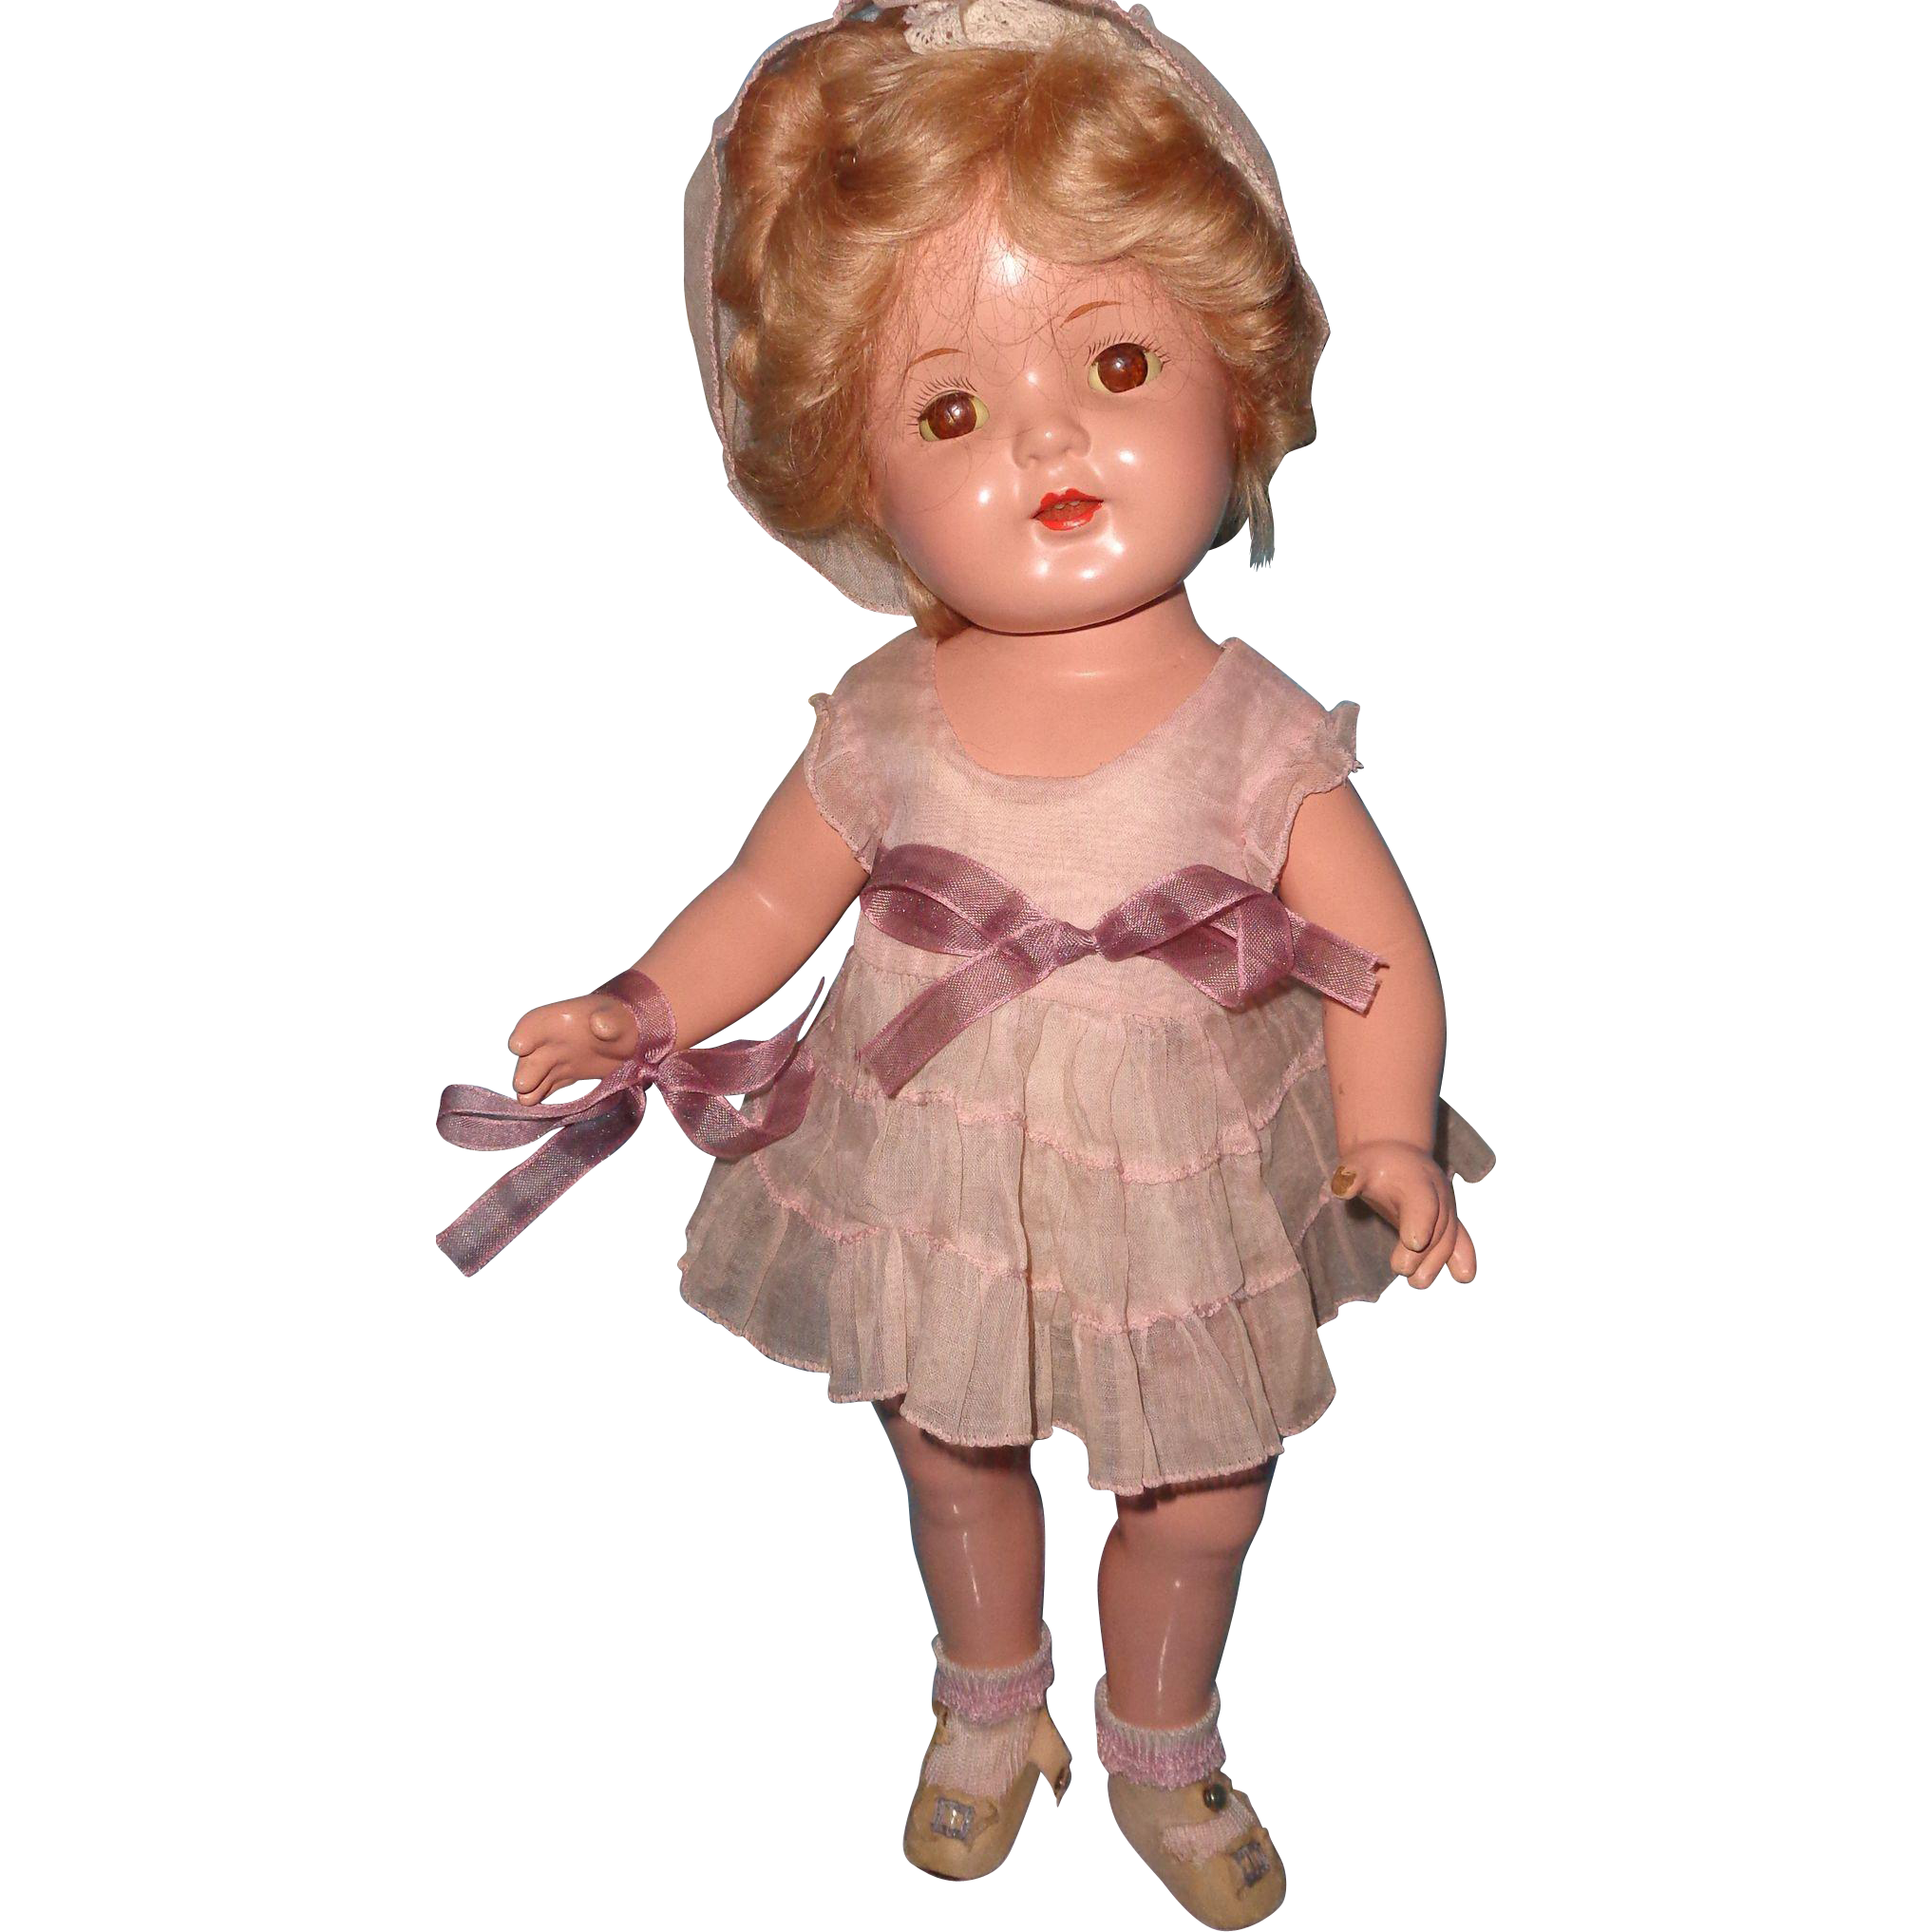 Factory Original Nancy Composition Doll by Arranbee